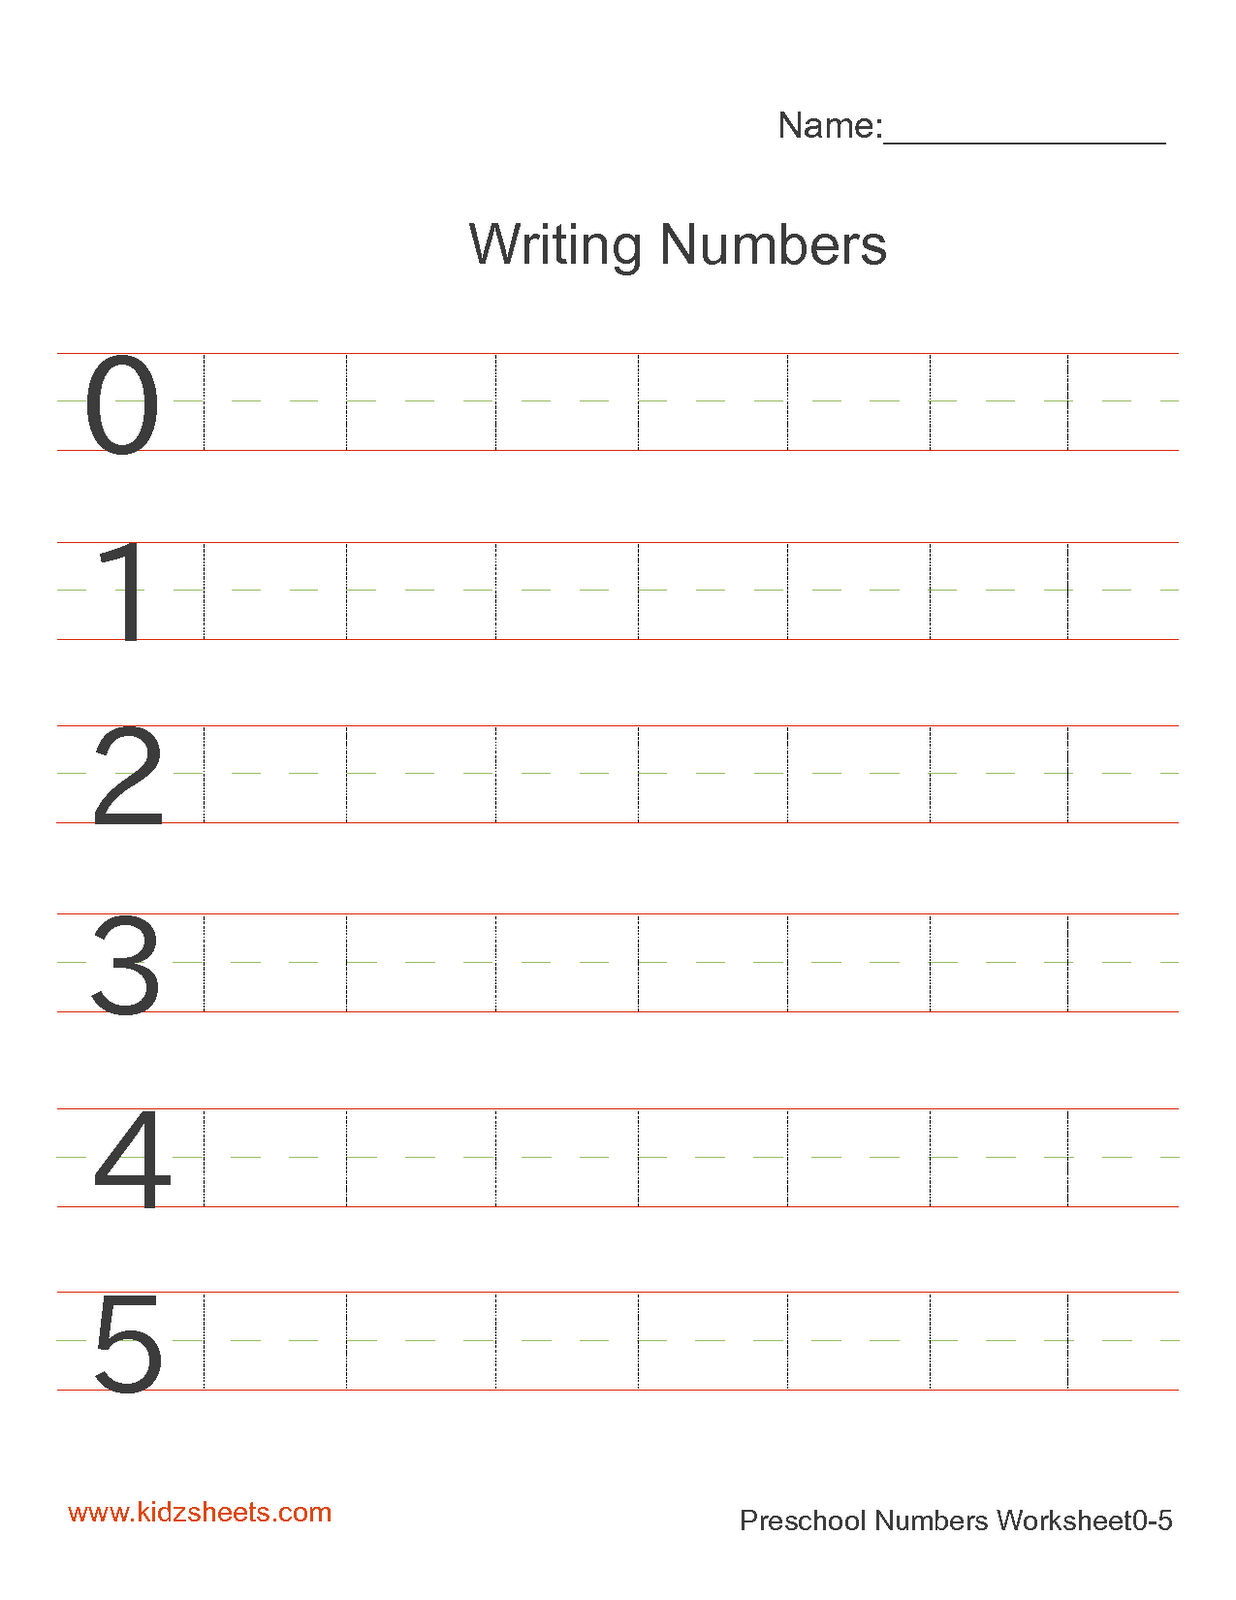 Free Handwriting Sheets